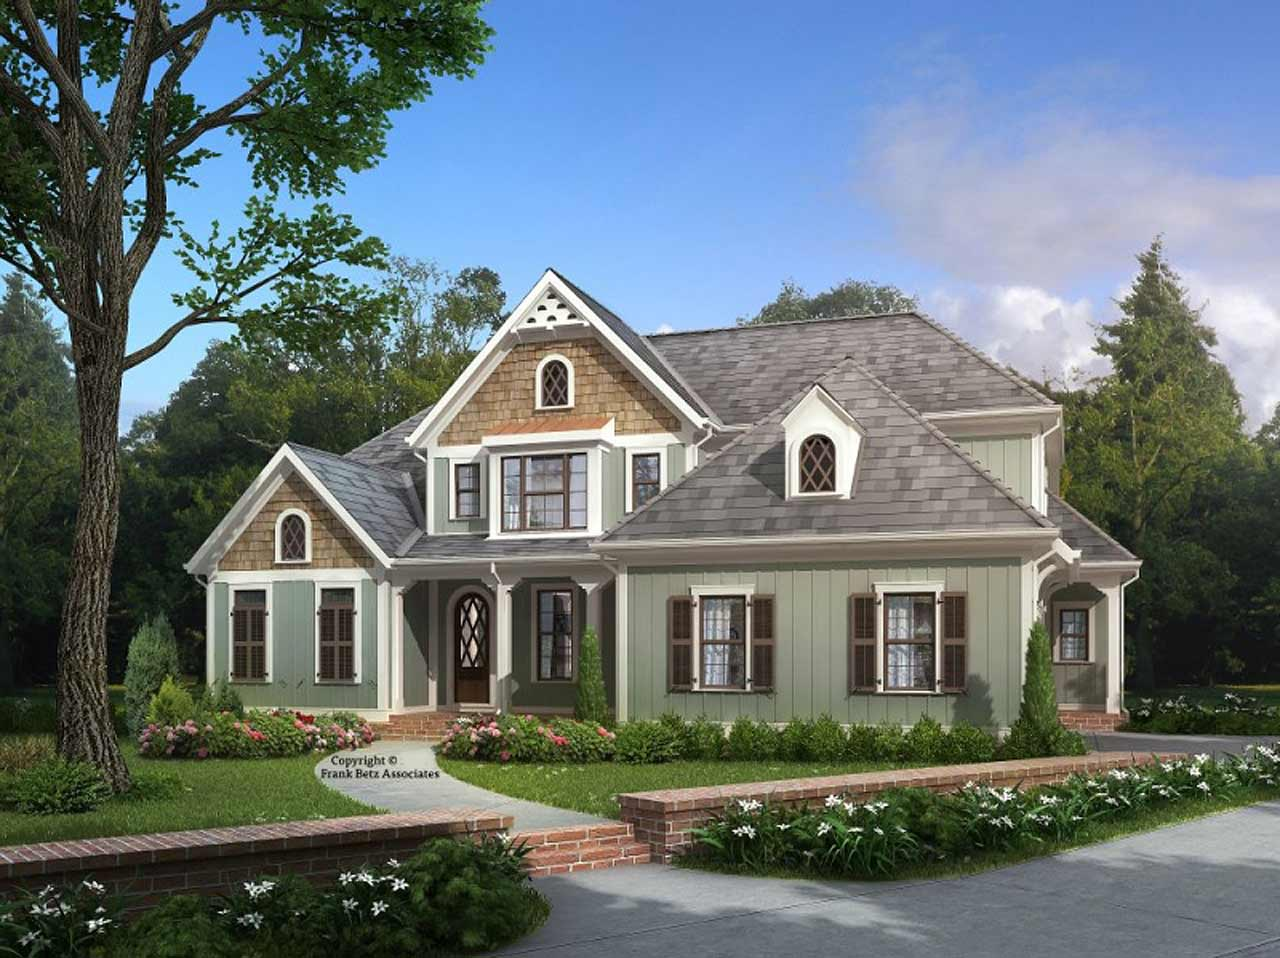 Country Style House Plans Plan: 85-341